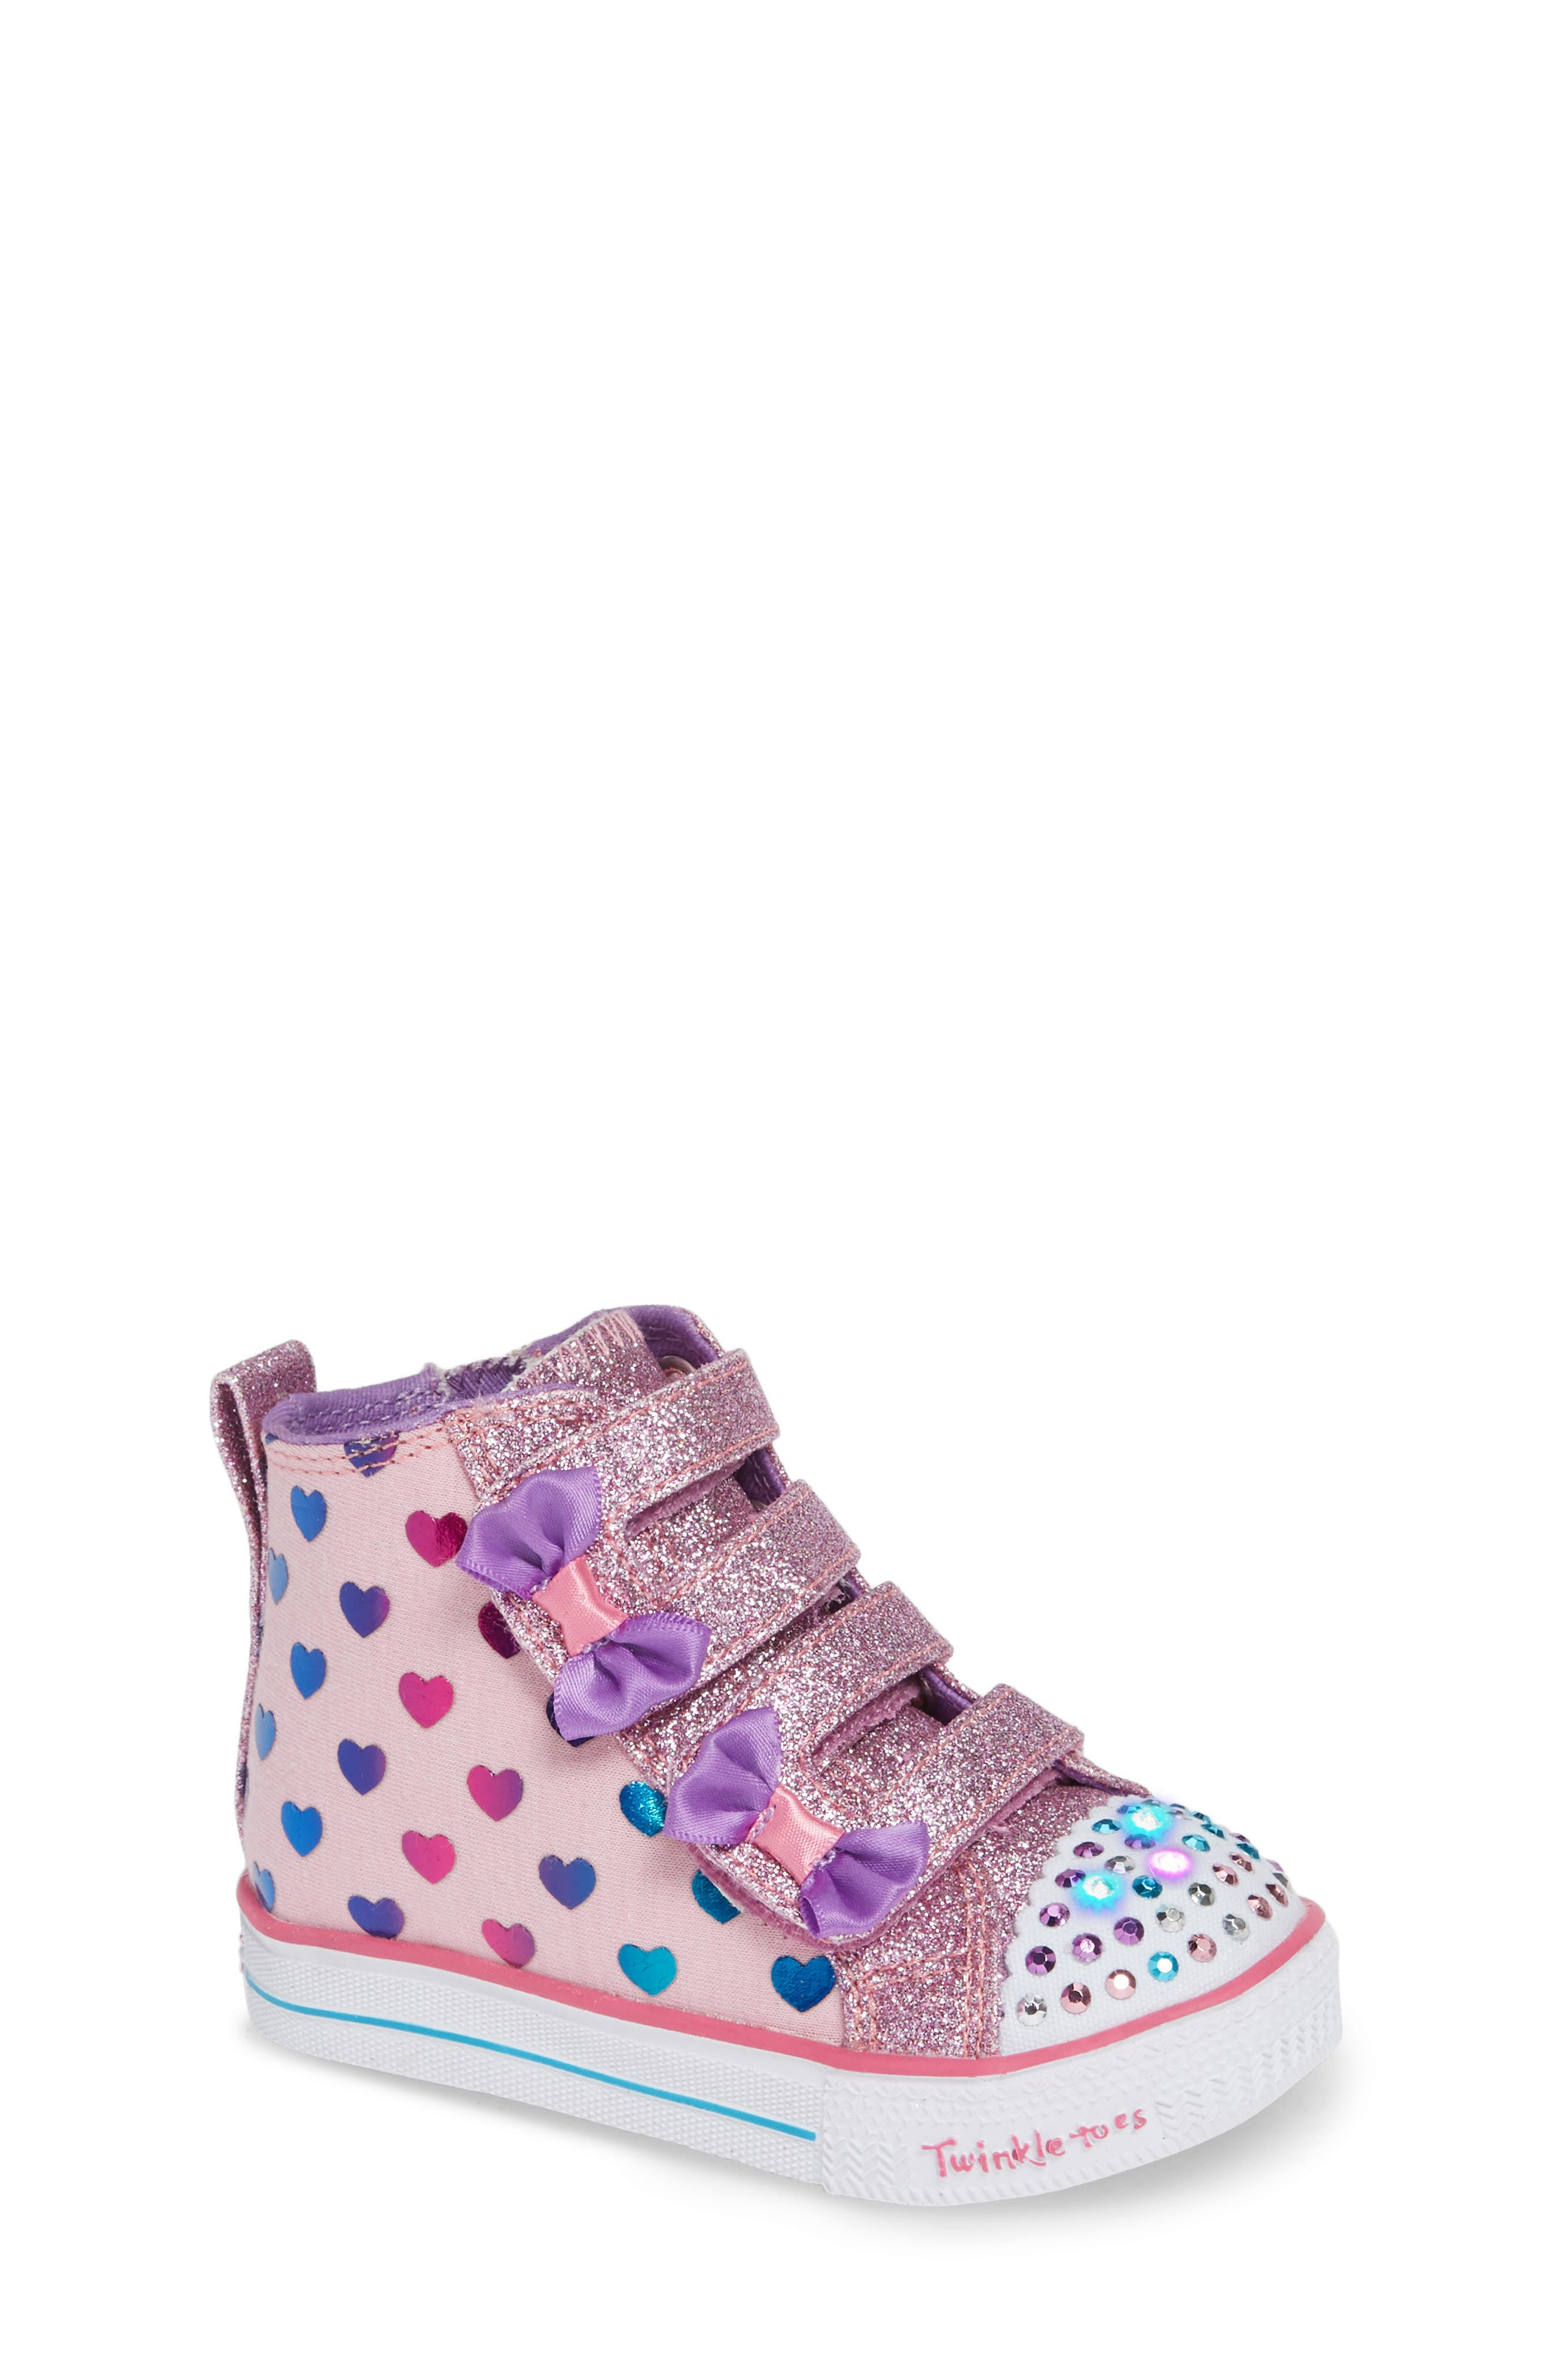 Shuffle Lite Fancy Flutters Light-Up High Top Sneaker,                             Alternate thumbnail 7, color,                             PINK/ MULTI